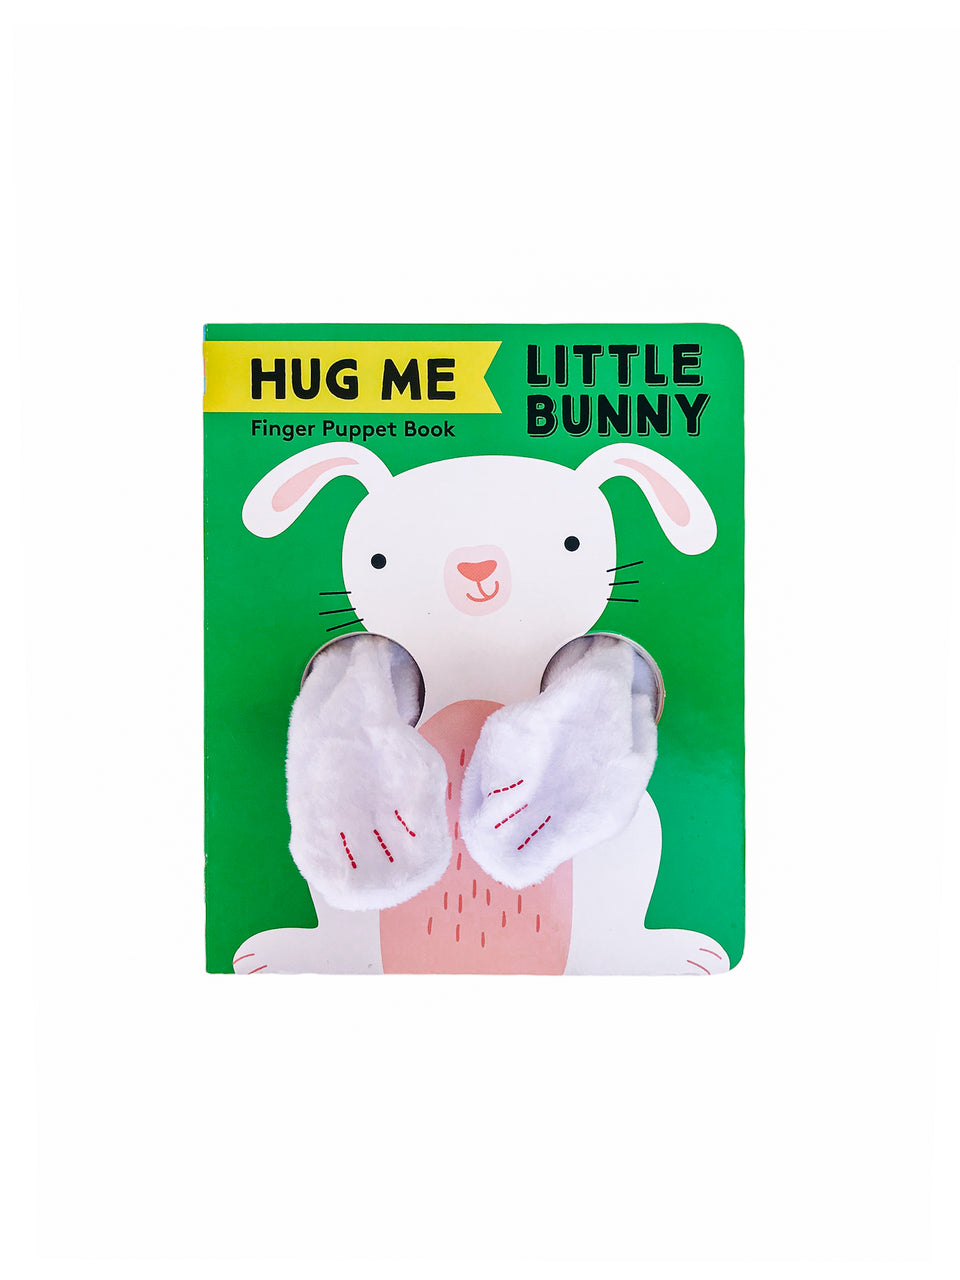 Hug Me Little Bunny Puppet Book